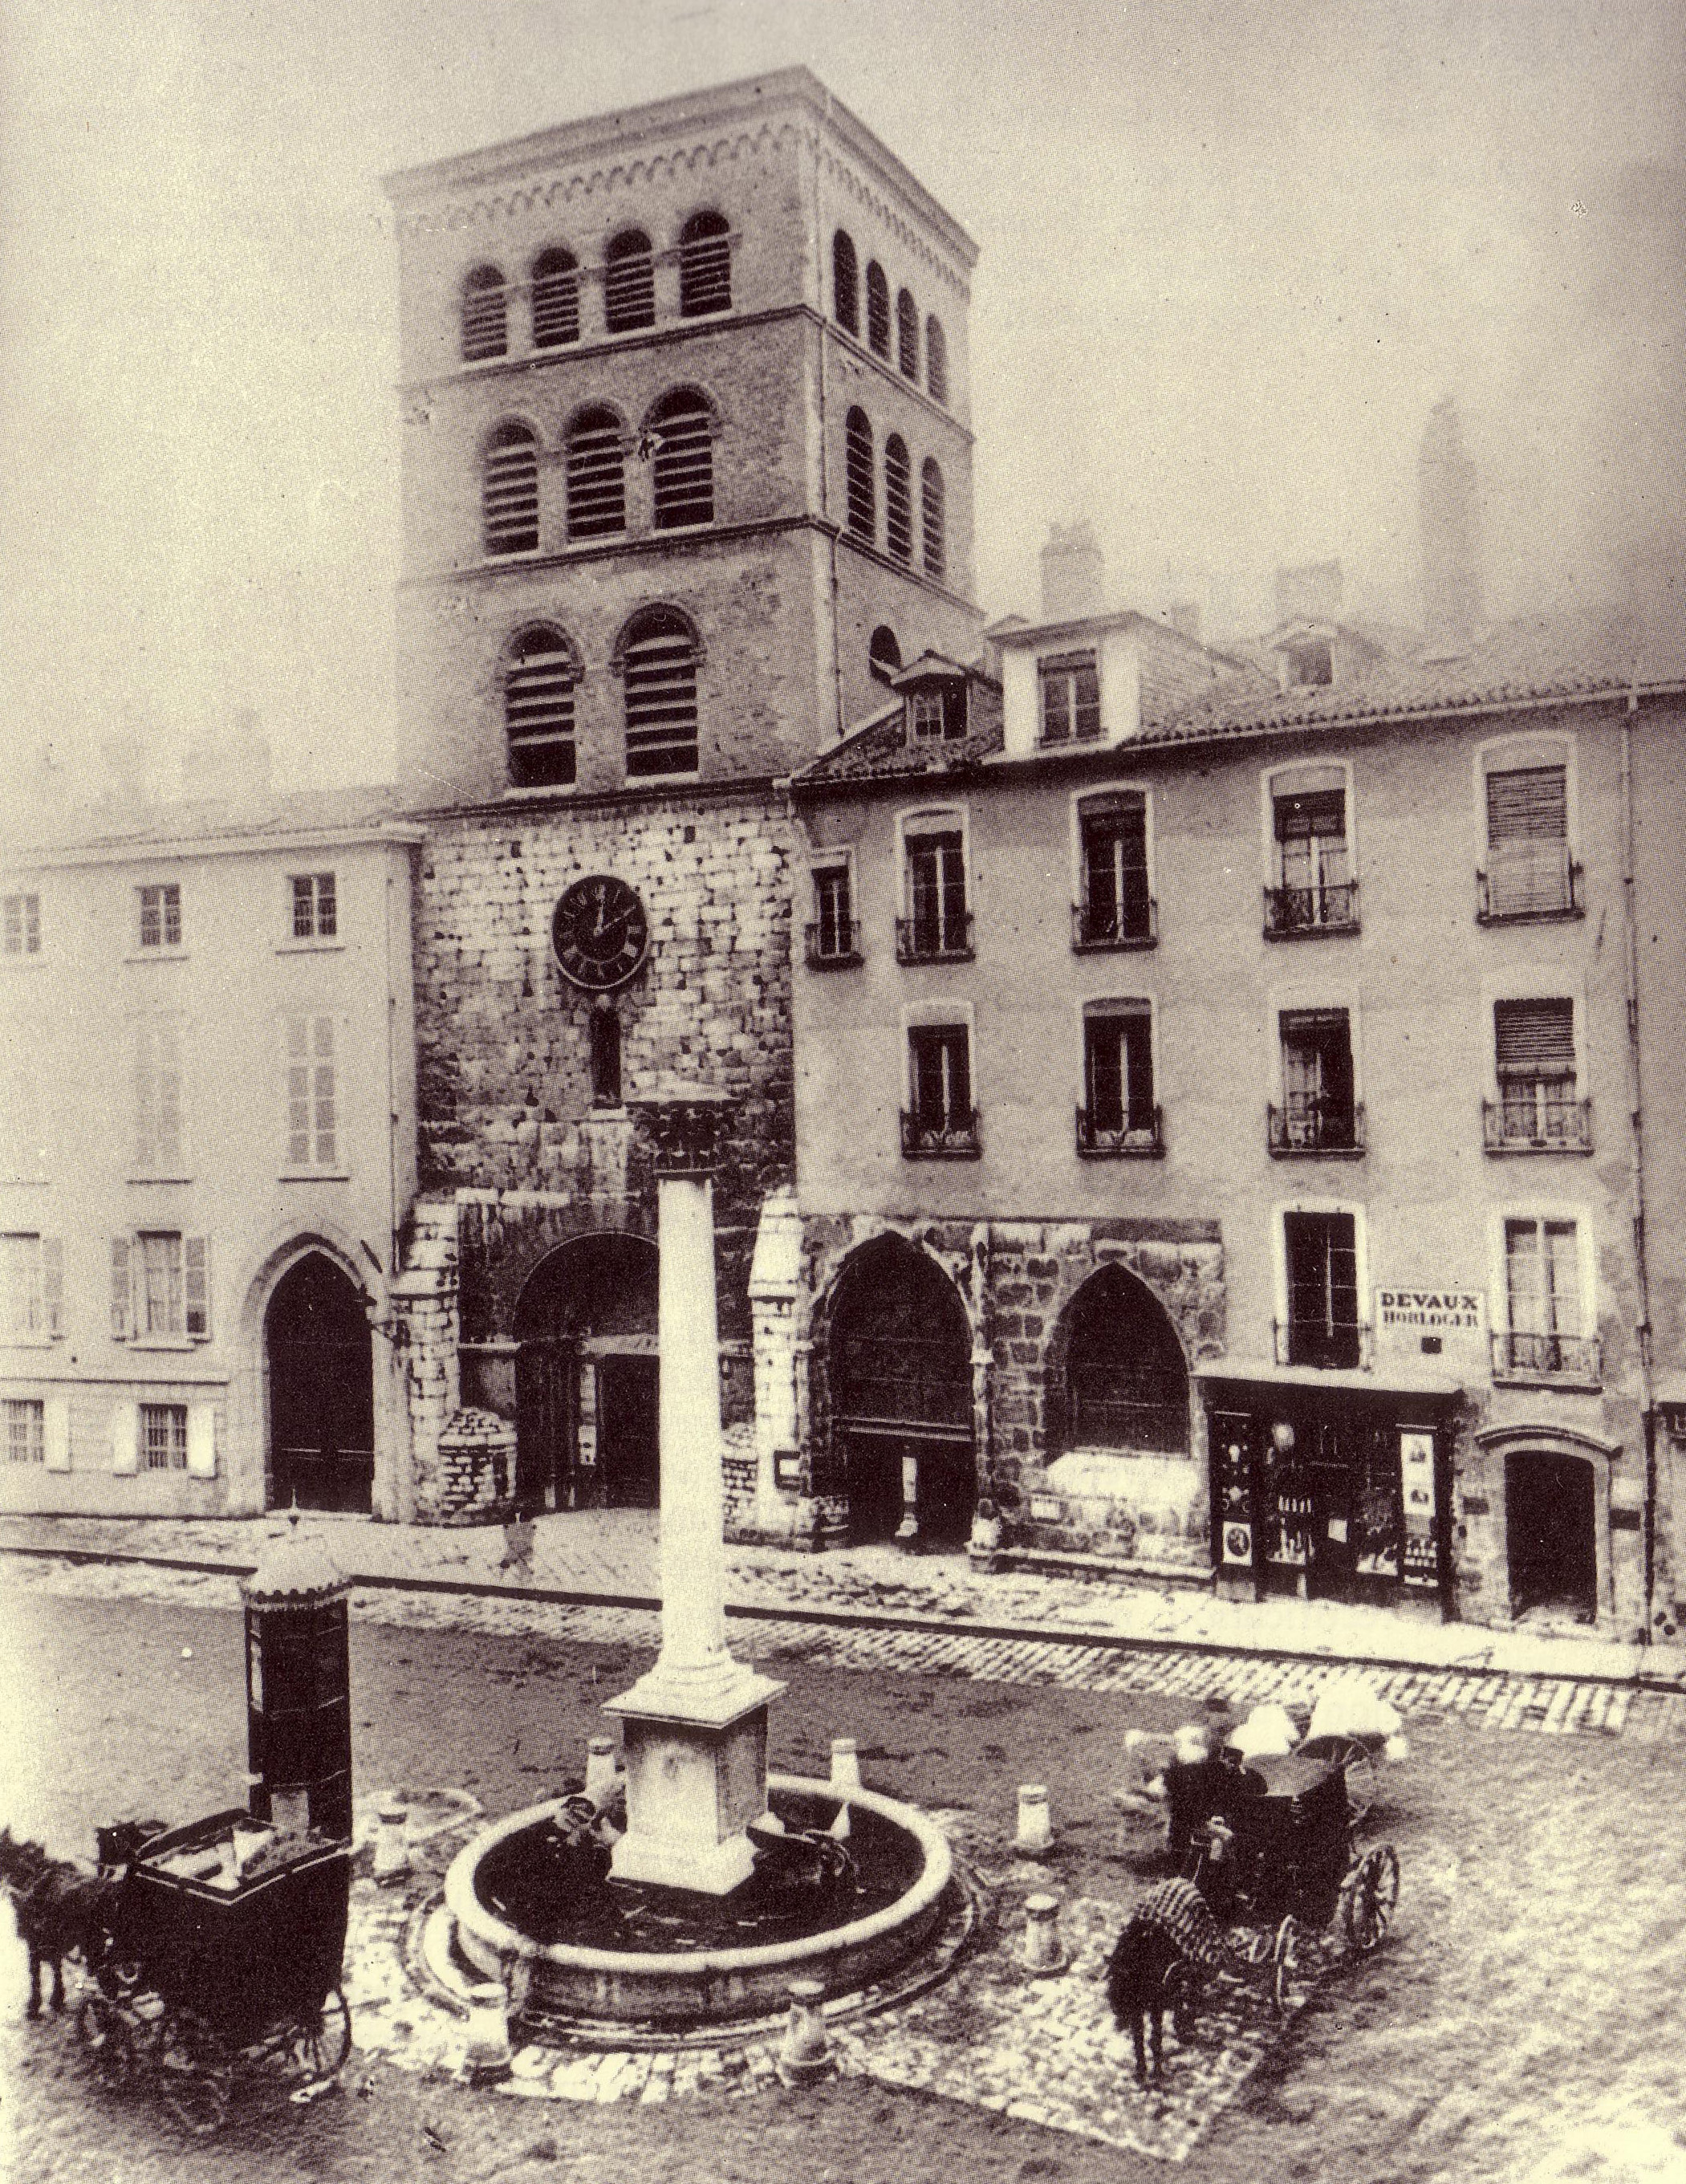 https://upload.wikimedia.org/wikipedia/commons/1/16/Grenoble_-_Notre-Dame_-_1880.jpg